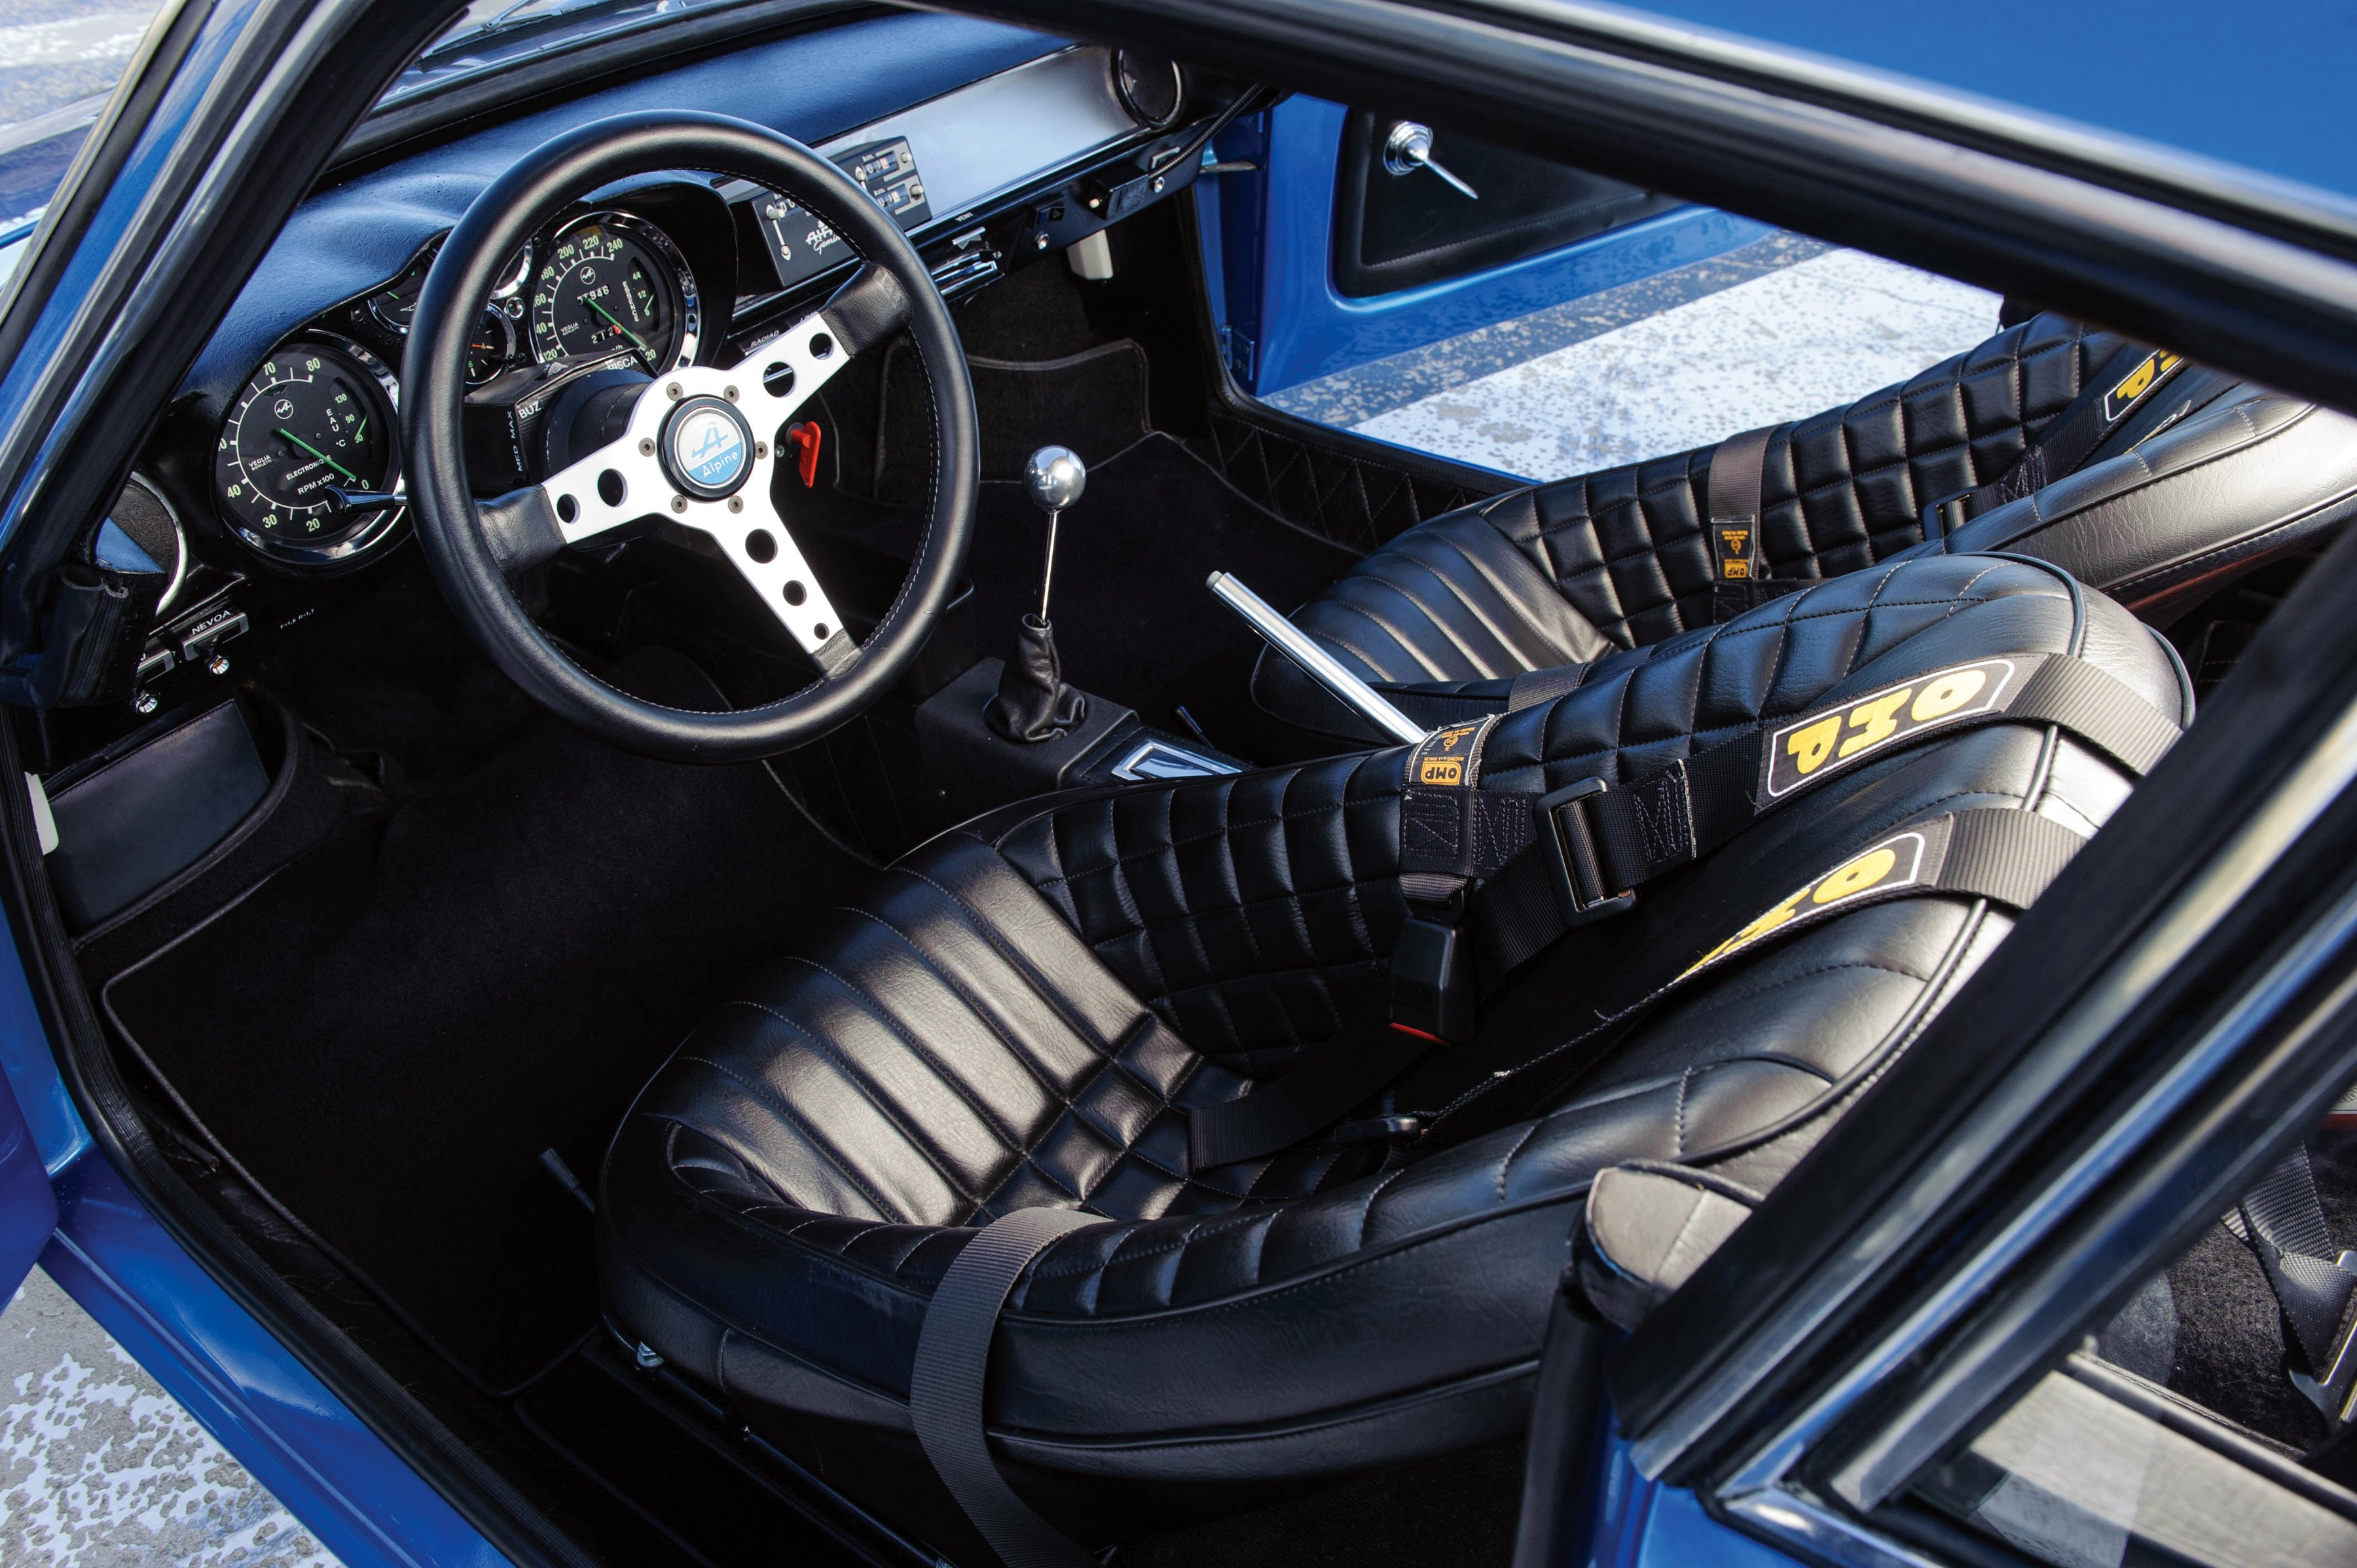 1972 75 renault alpine a110 1600s classic wallpaper for Interieur alpine a110